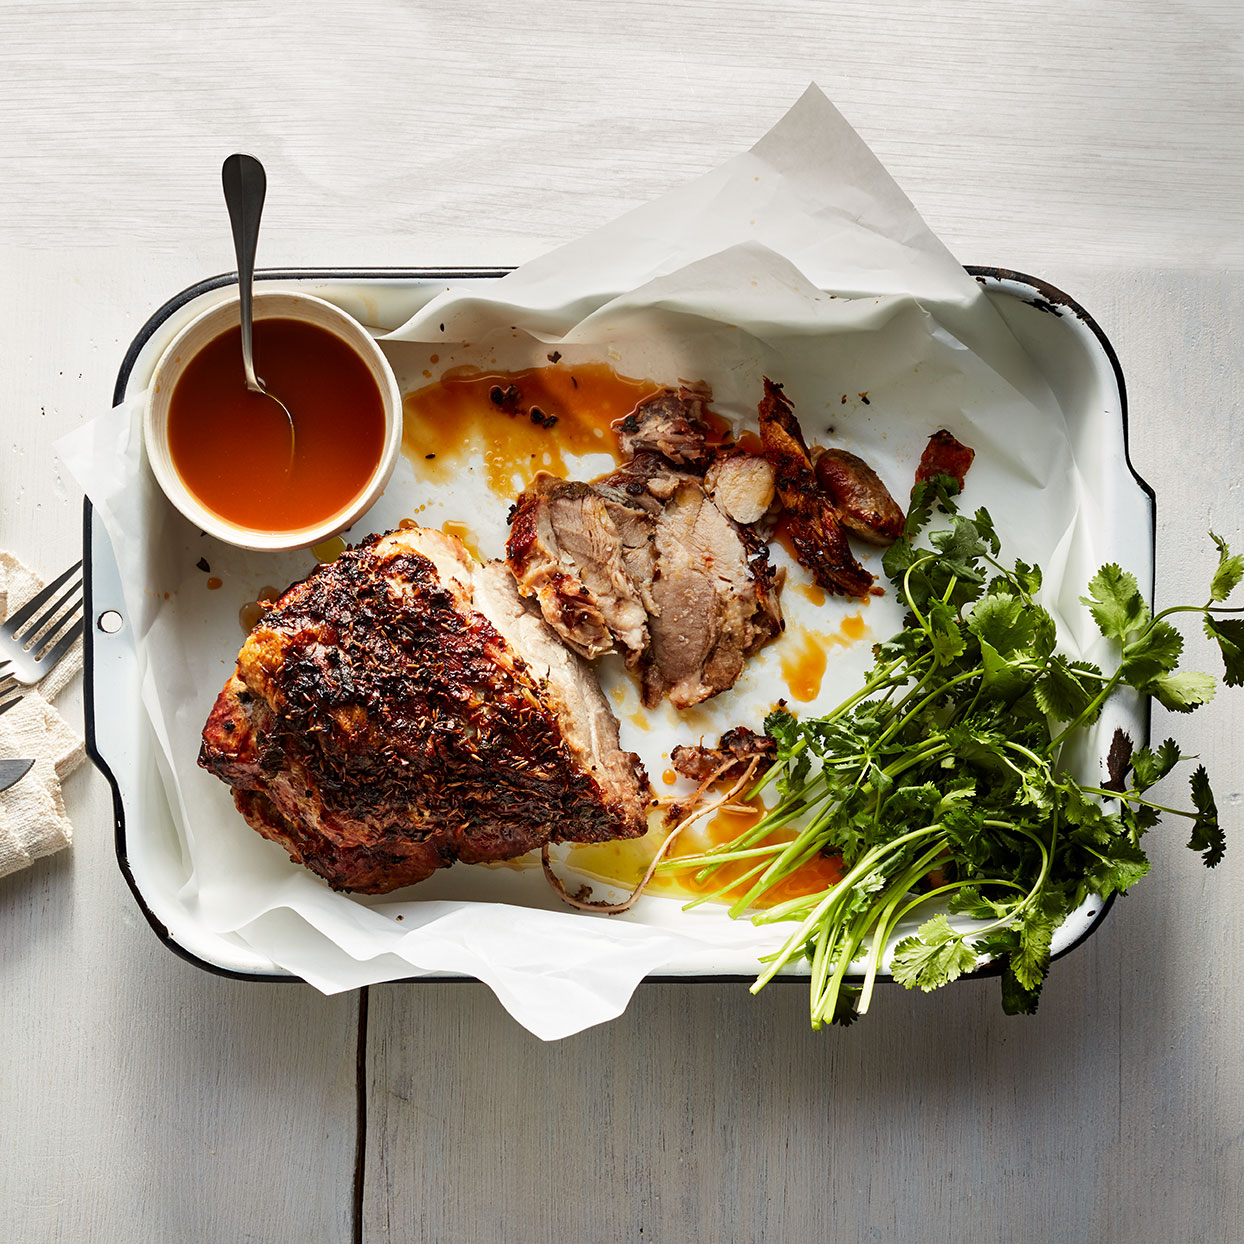 Slow-Roasted Pork Shoulder with Tequila Citrus Sauce